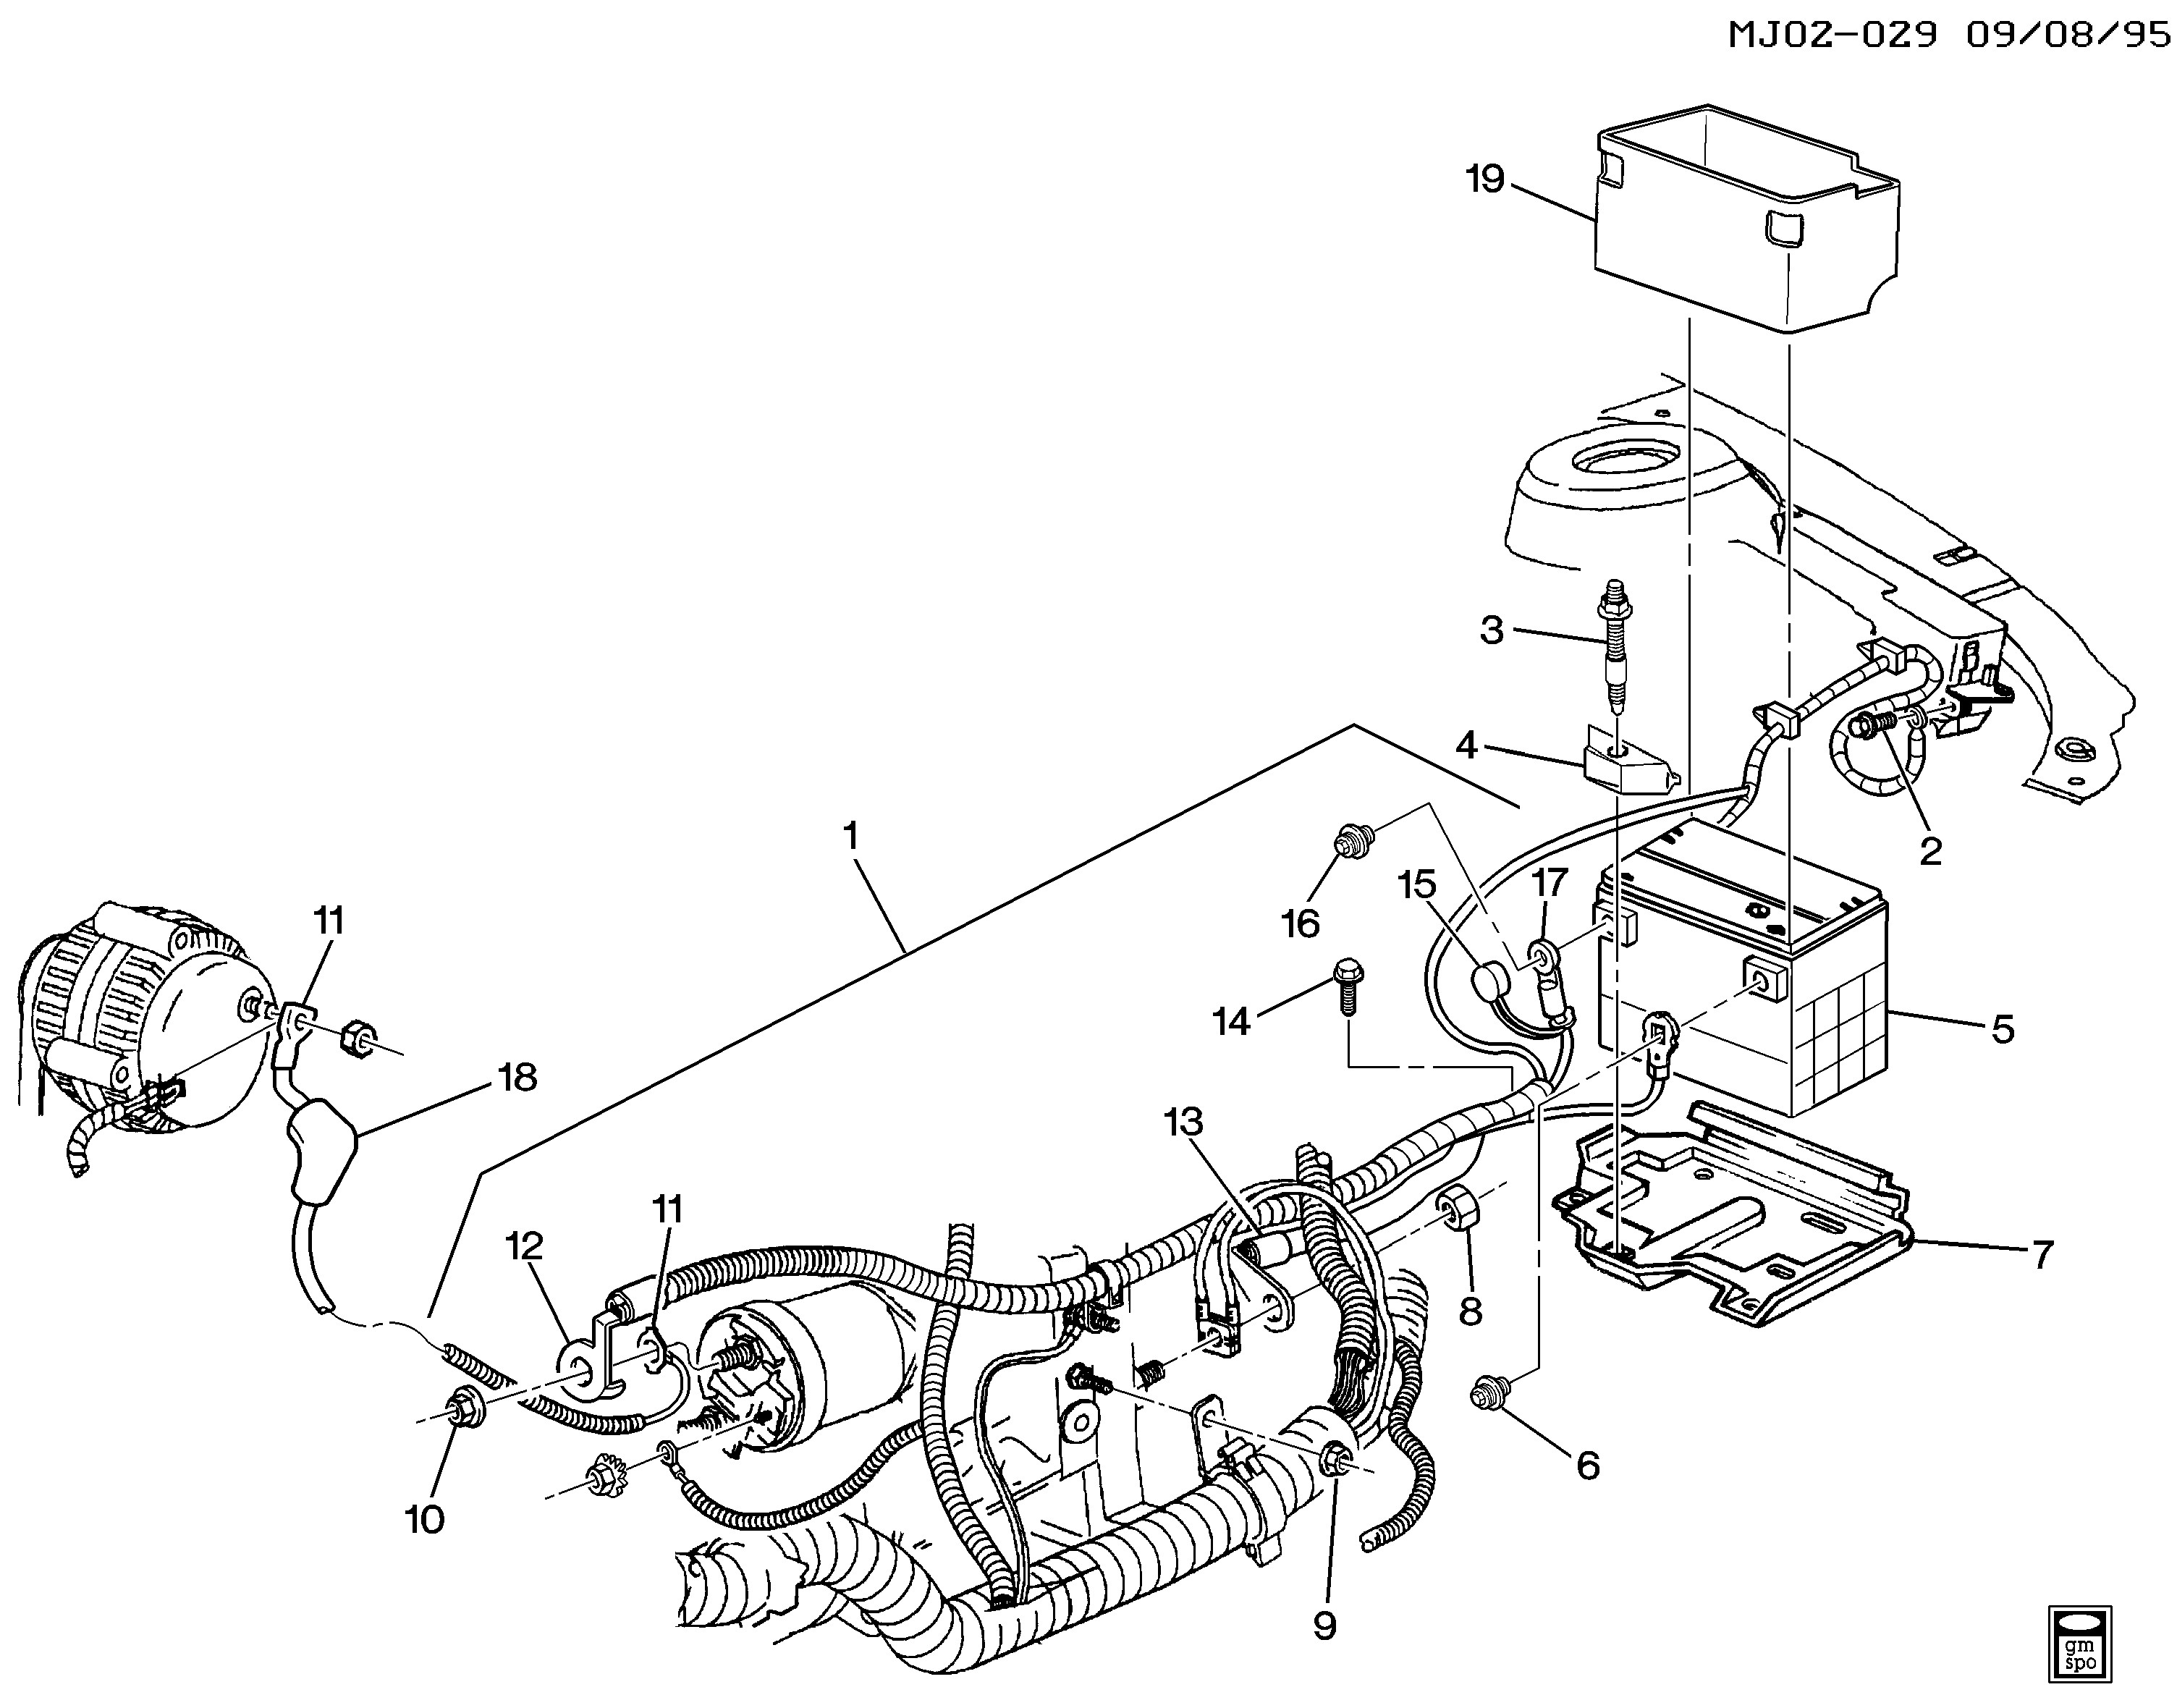 Gm Parts Diagrams with Part Numbers Cavalier Battery Cables Chevrolet Epc Line Nemiga Of Gm Parts Diagrams with Part Numbers